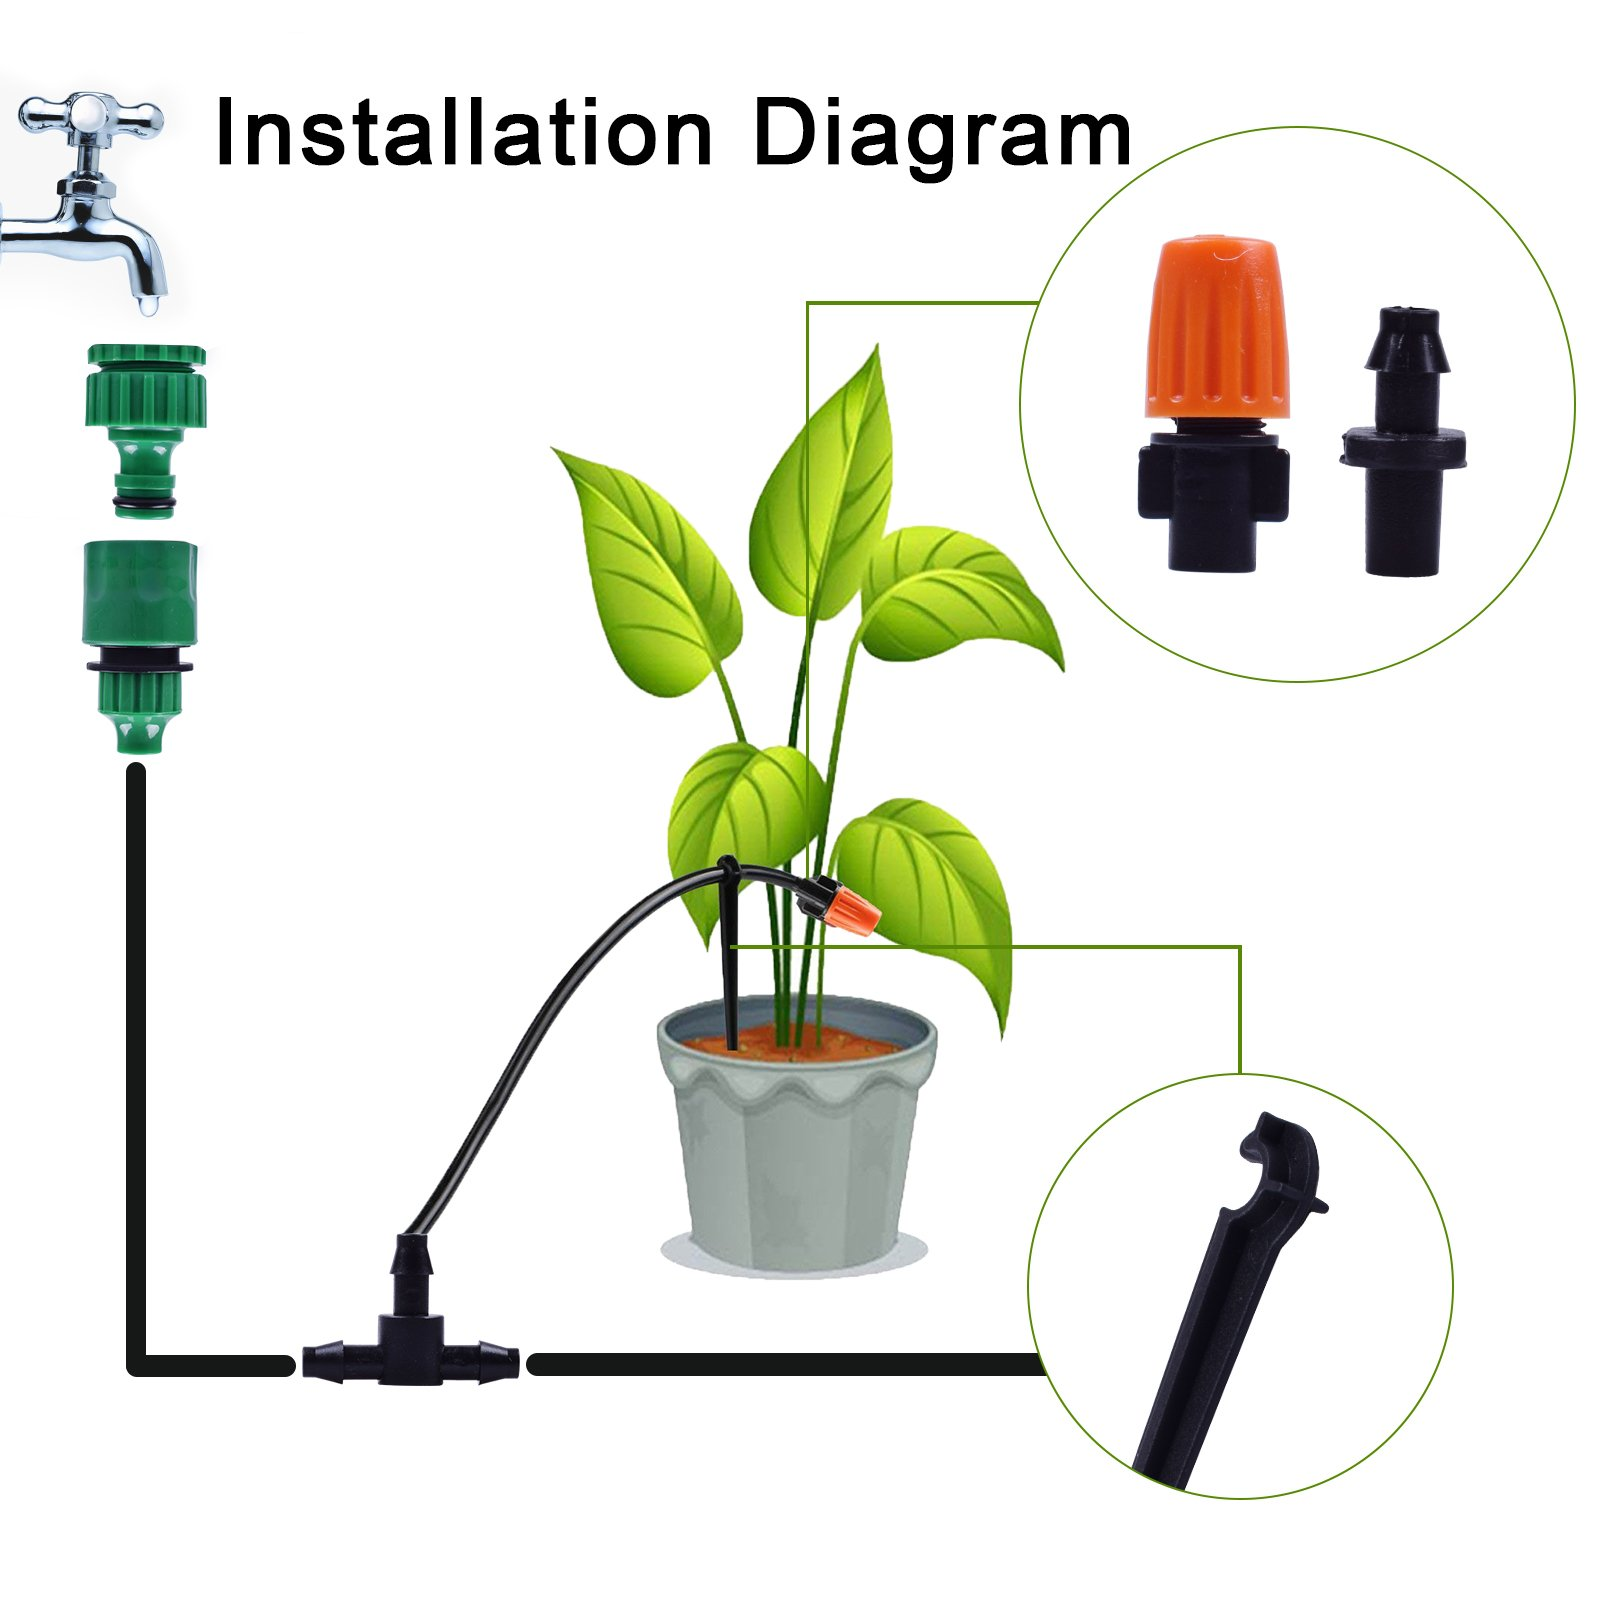 "MIXC 1/4-inch Drip Irrigation Kits Accessories Plant Watering System with 50ft 1/4"" Blank Distribution Tubing Hose, 20pcs Misters, 39pcs Barbed Fittings, Support Stakes, Quick Adapter, Model: GG0B"